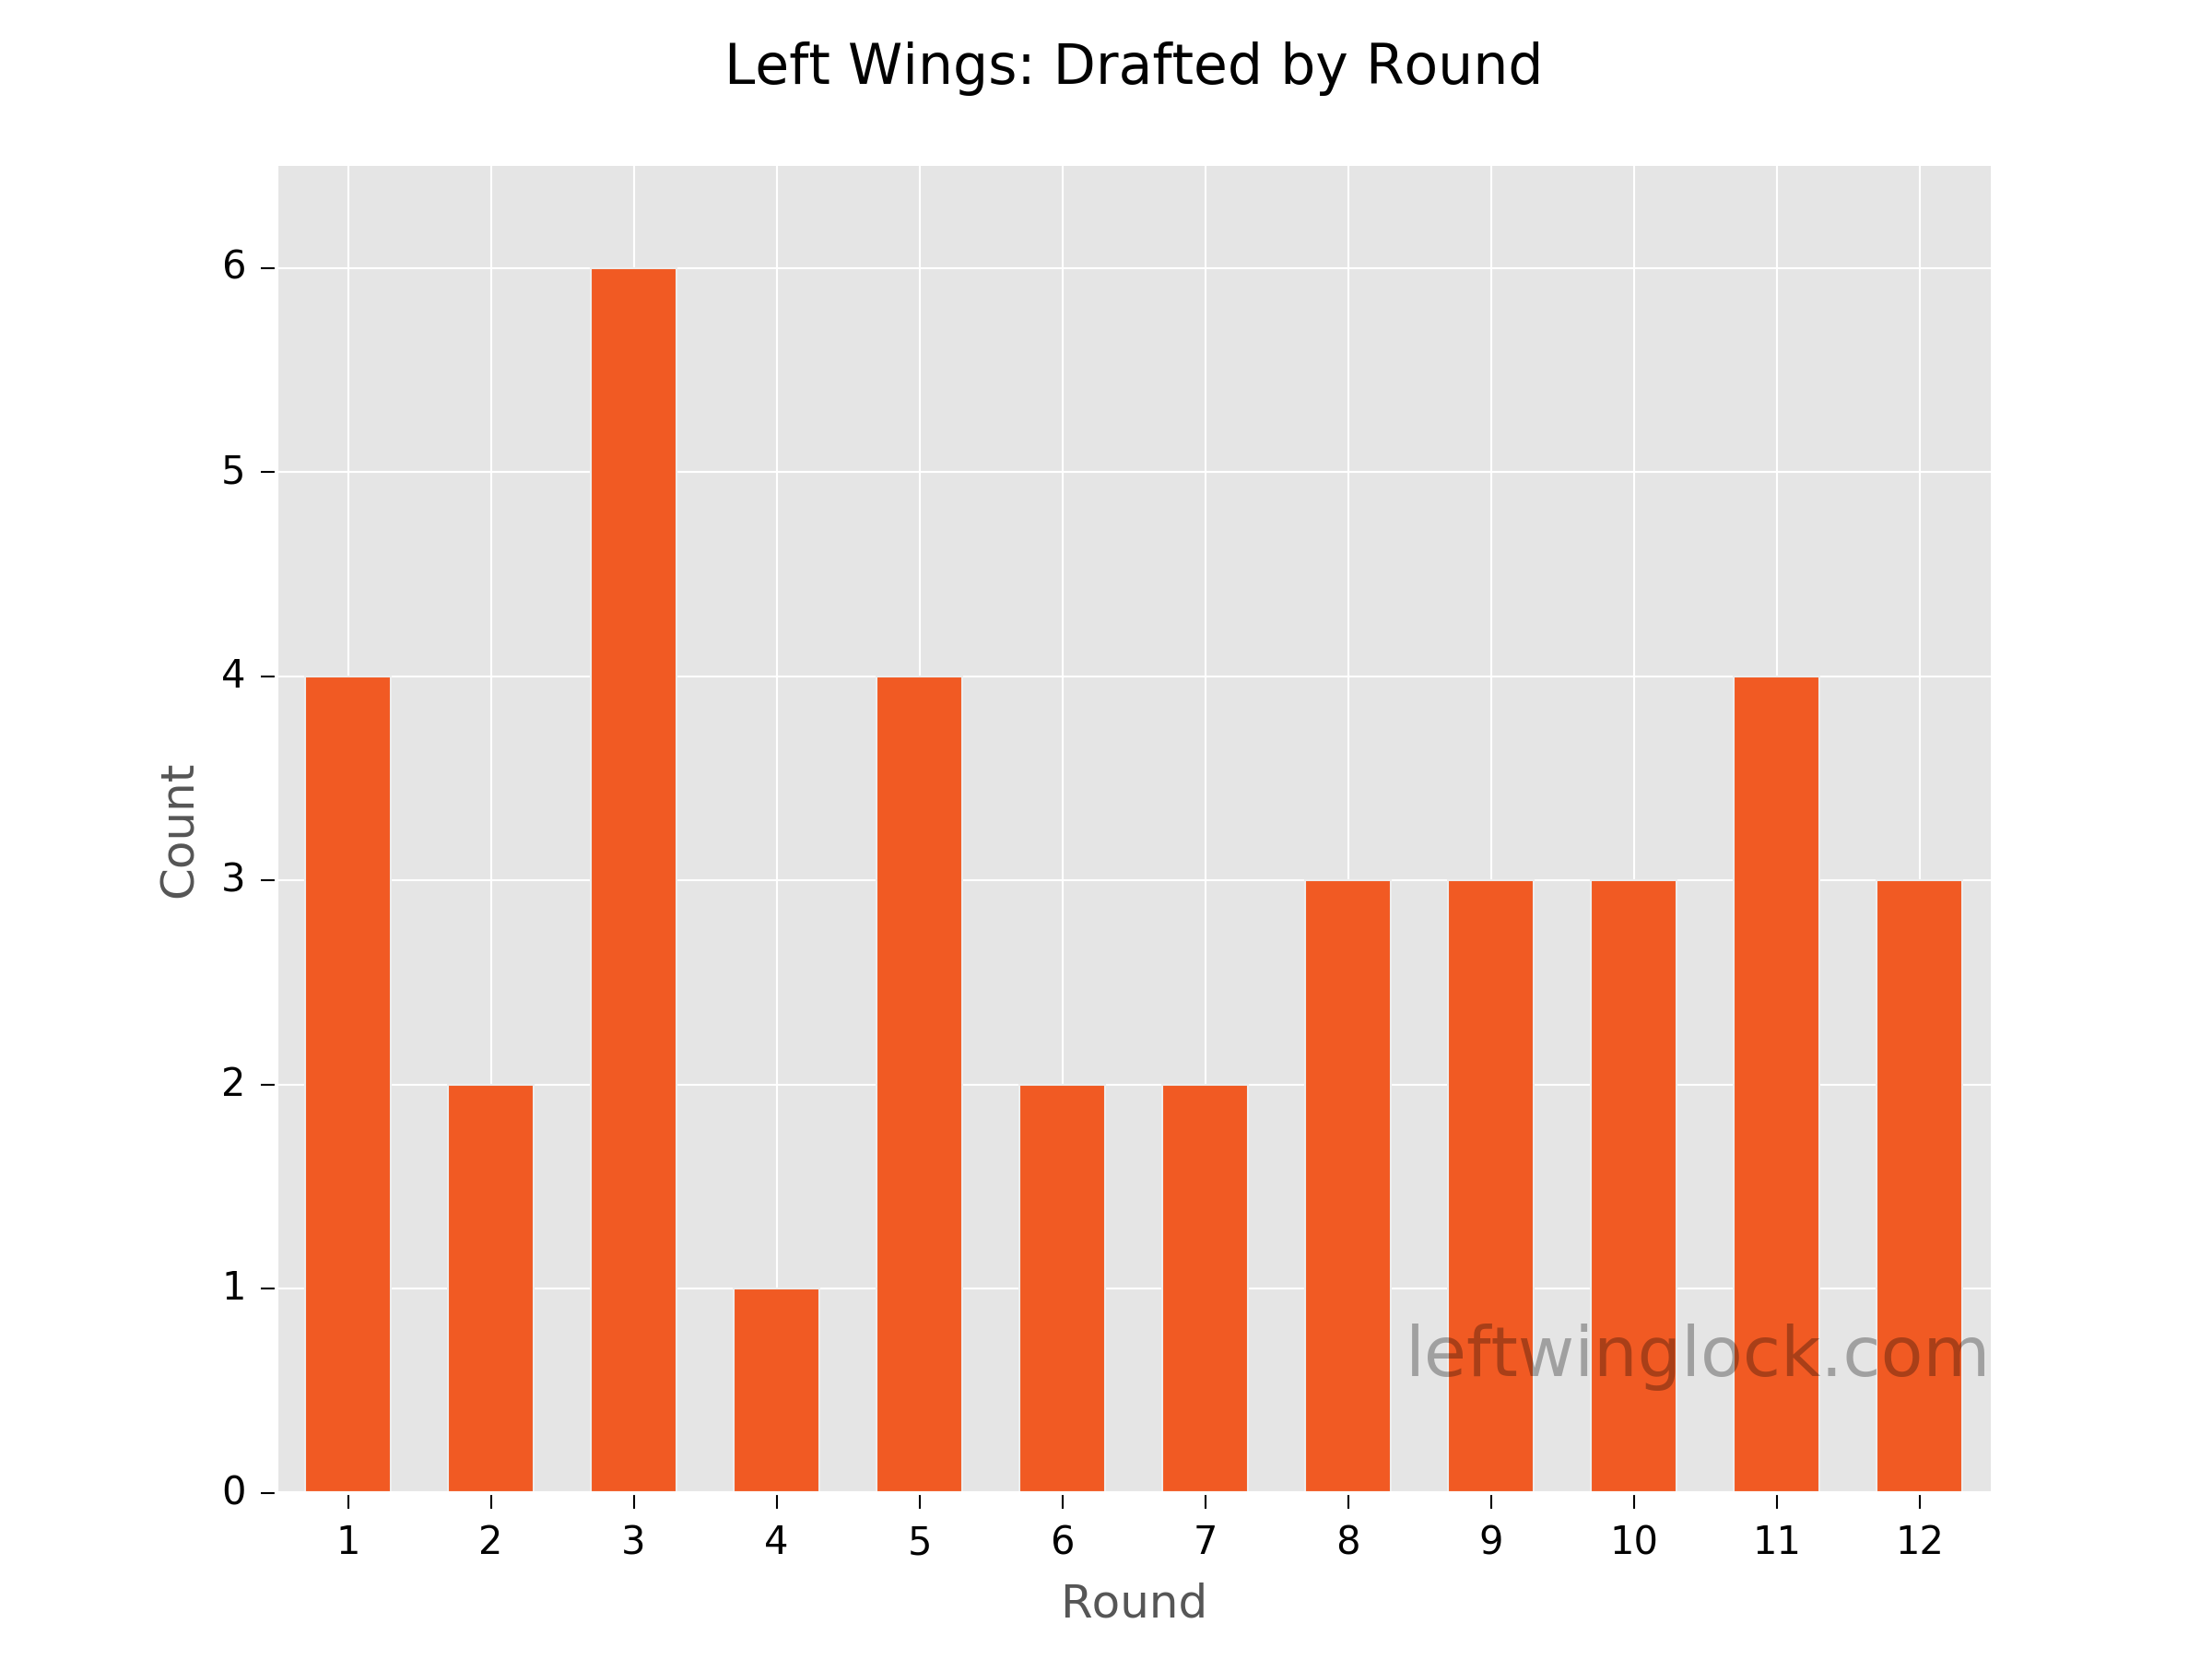 Finding Value at Left Wing Position